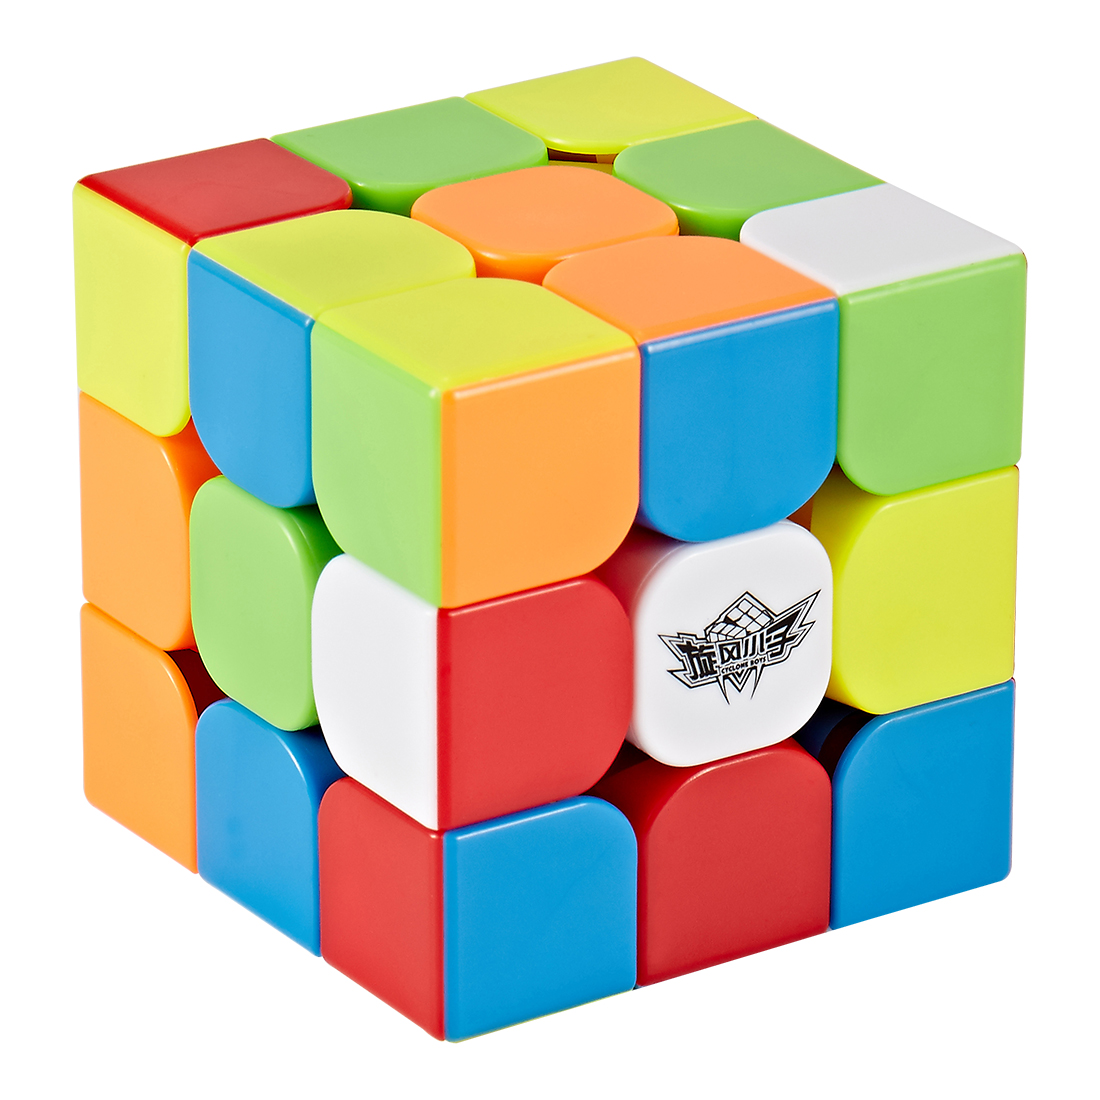 Cyclone Boys Feijue 3x3 Magnetic Version Magic Cube Stickerless Speed Cube Puzzle Toy - Colorful yj yongjun moyu yuhu megaminx magic cube speed puzzle cubes kids toys educational toy